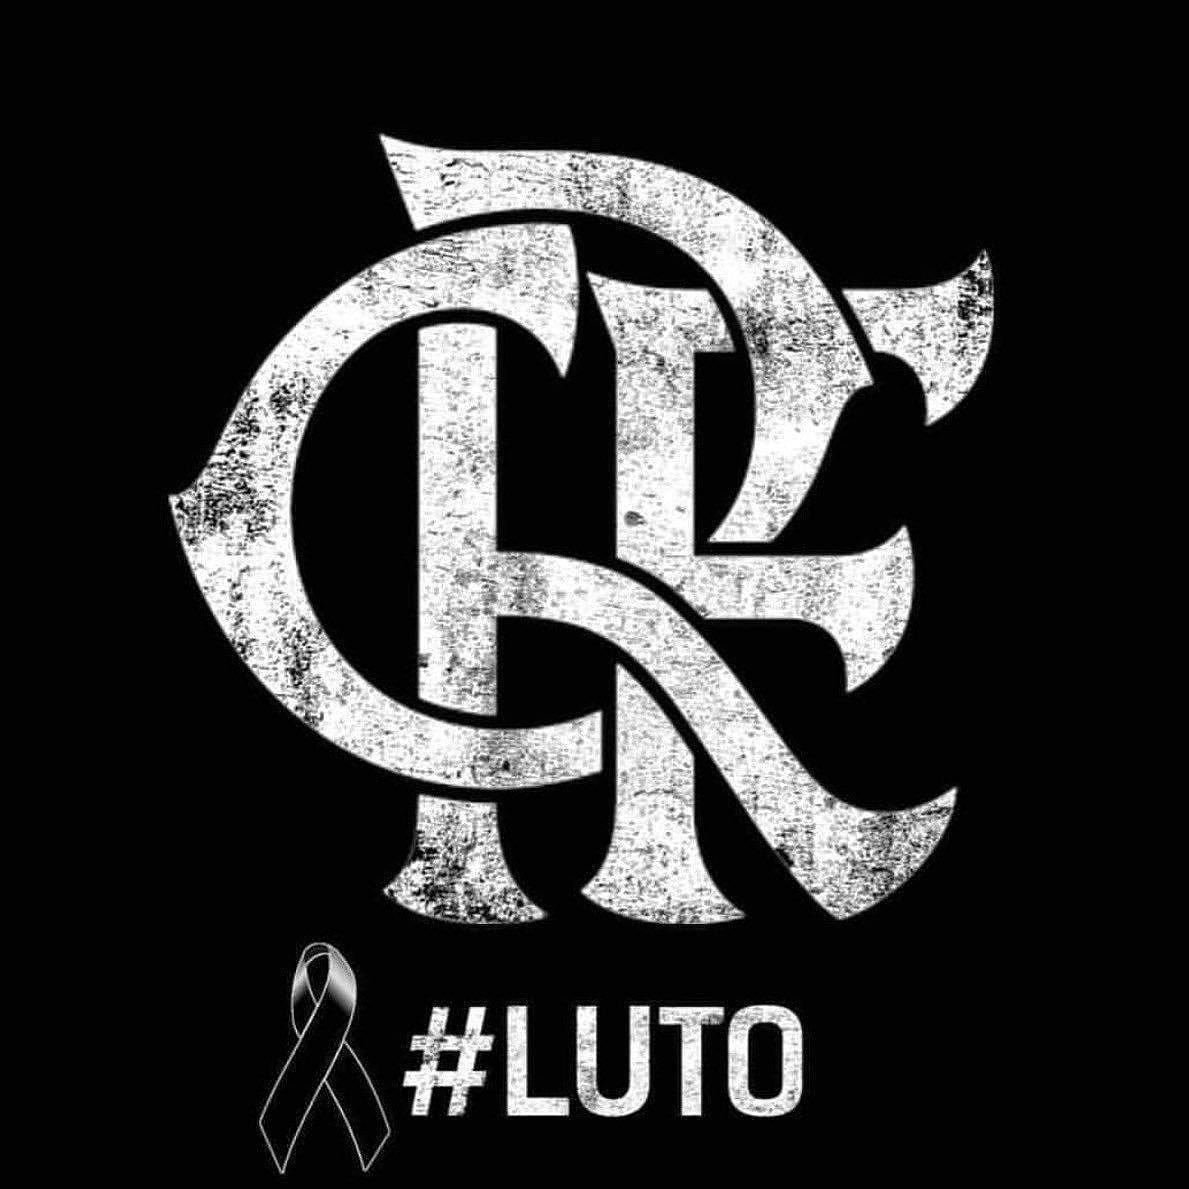 Unbelievable! Very sad news coming from Brazil. May God bless and comfort the hearts of these families. 🙏🏽 #ForçaFlamengo